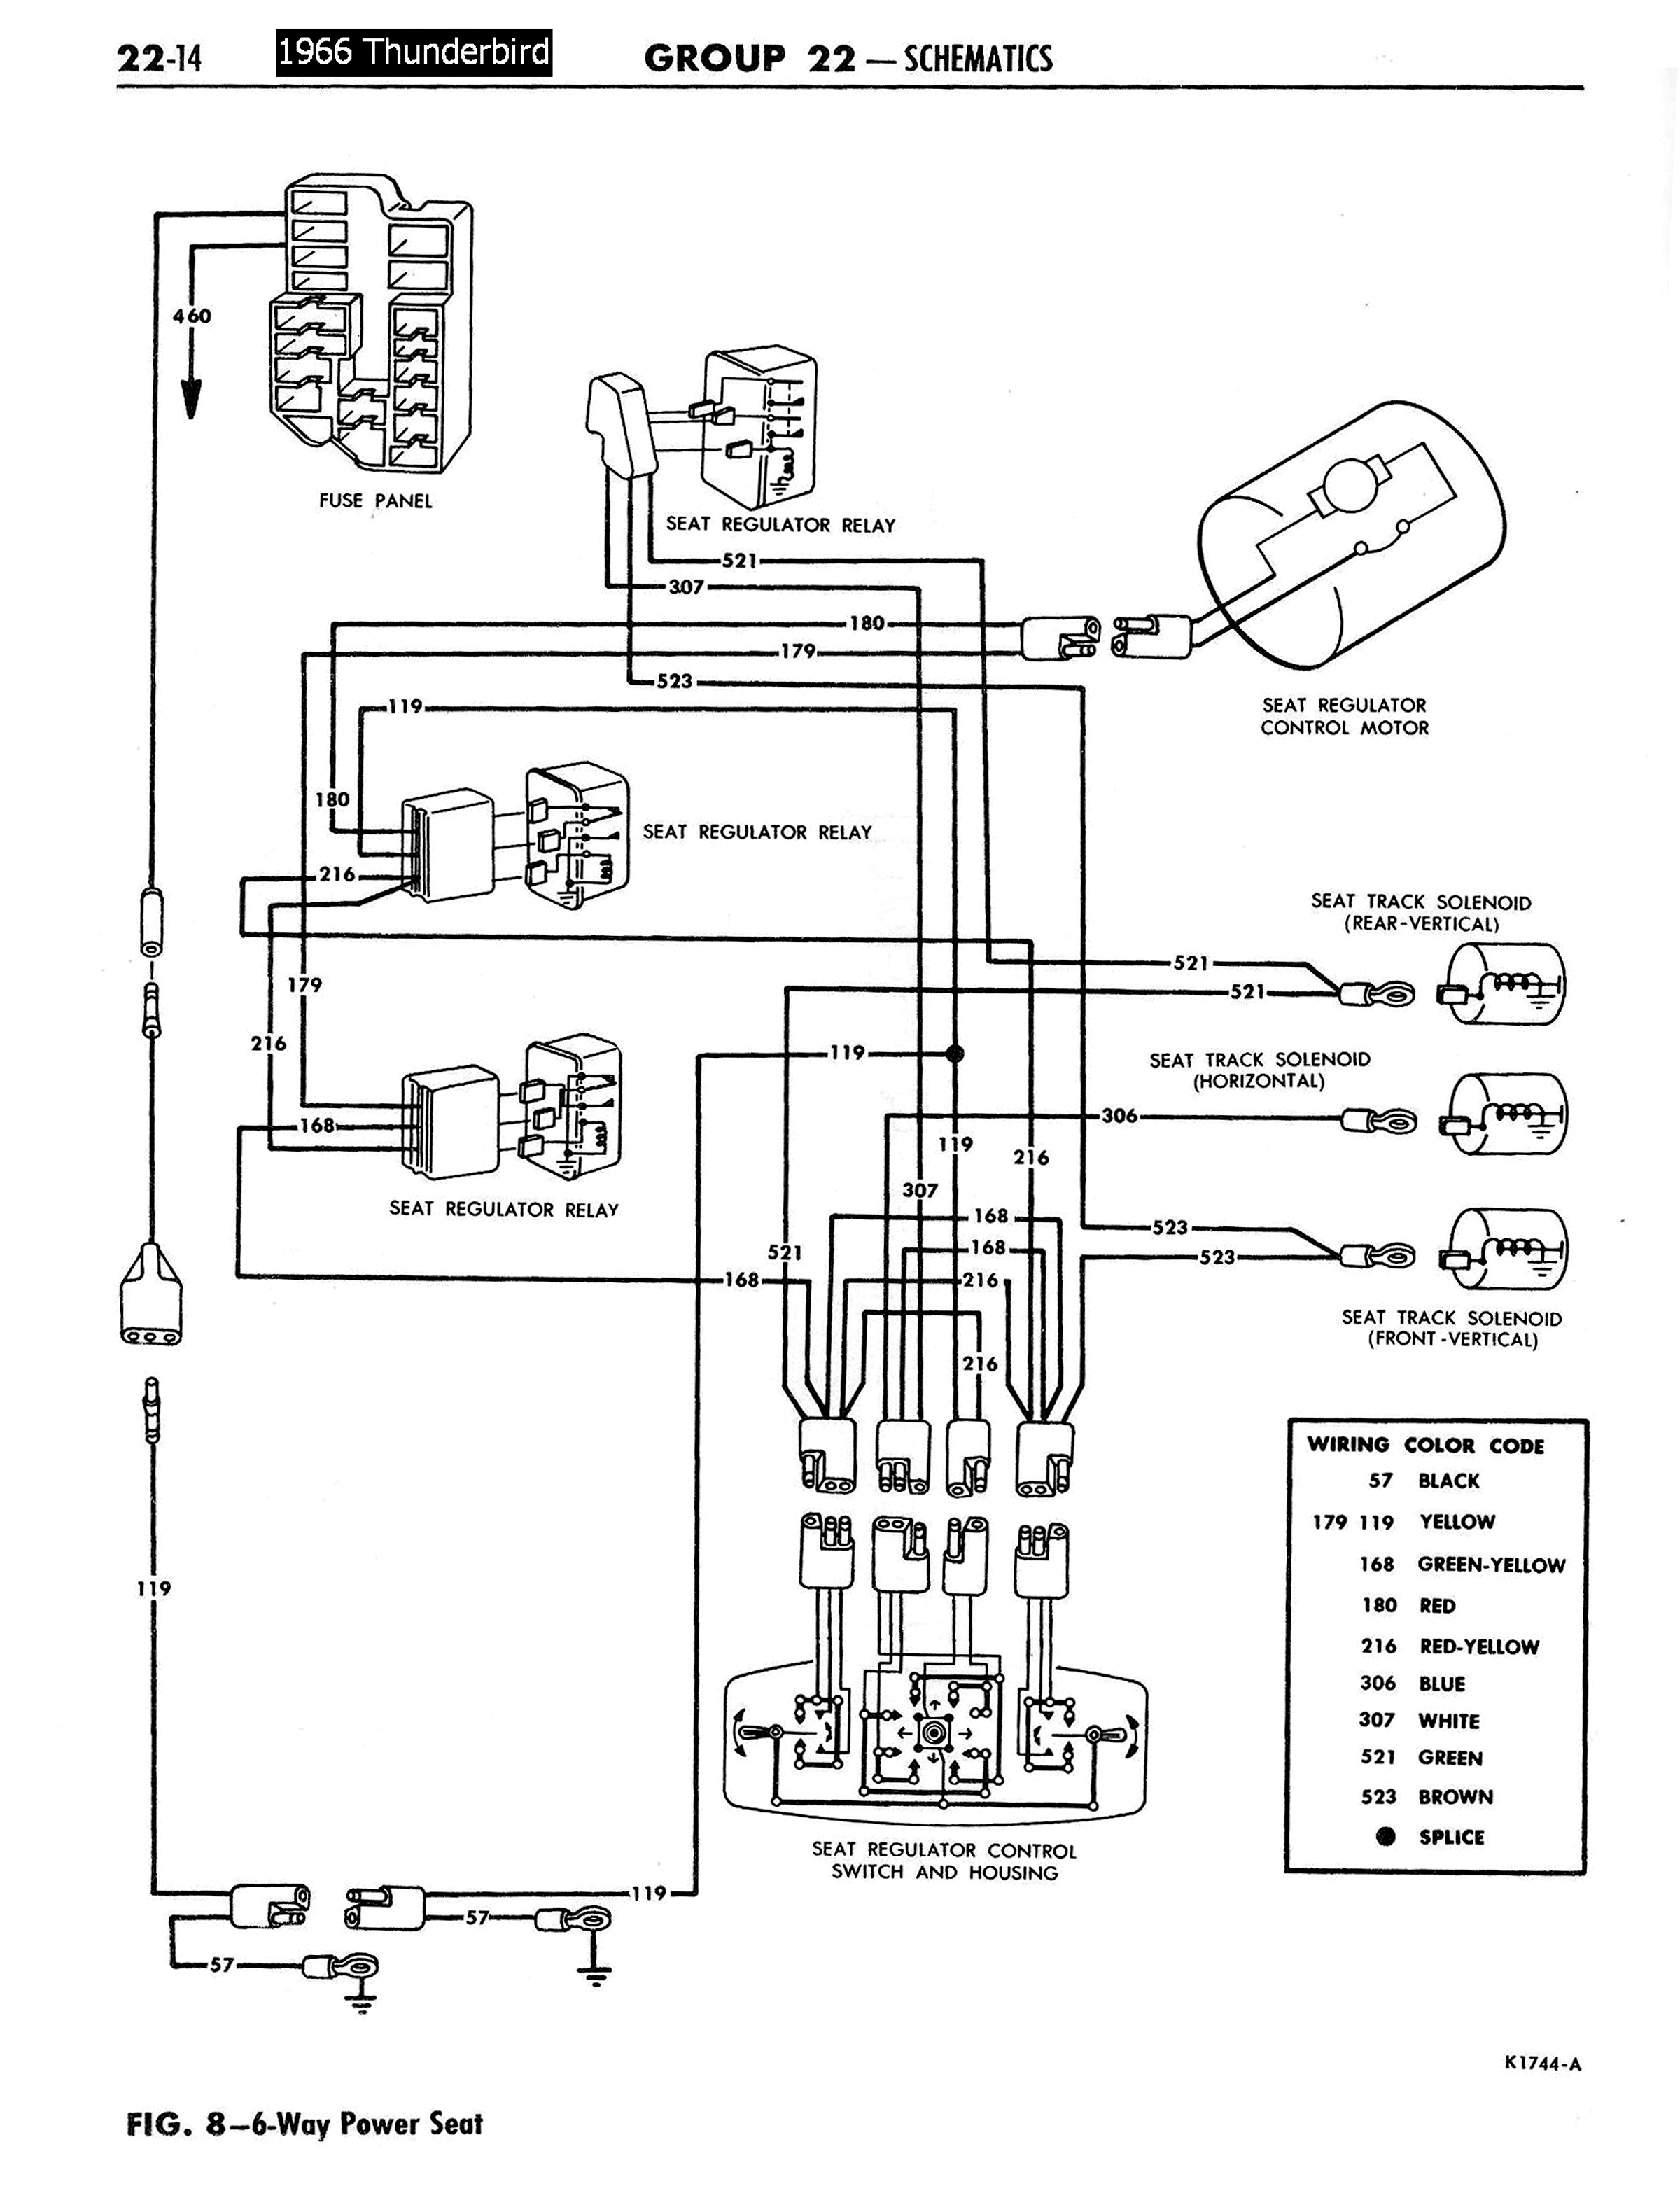 Mercury Cougar Turn Signal Wiring Diagrams Download 2001 Diagram 1958 68 Ford Electrical Schematics Rh Squarebirds Org Speed Control